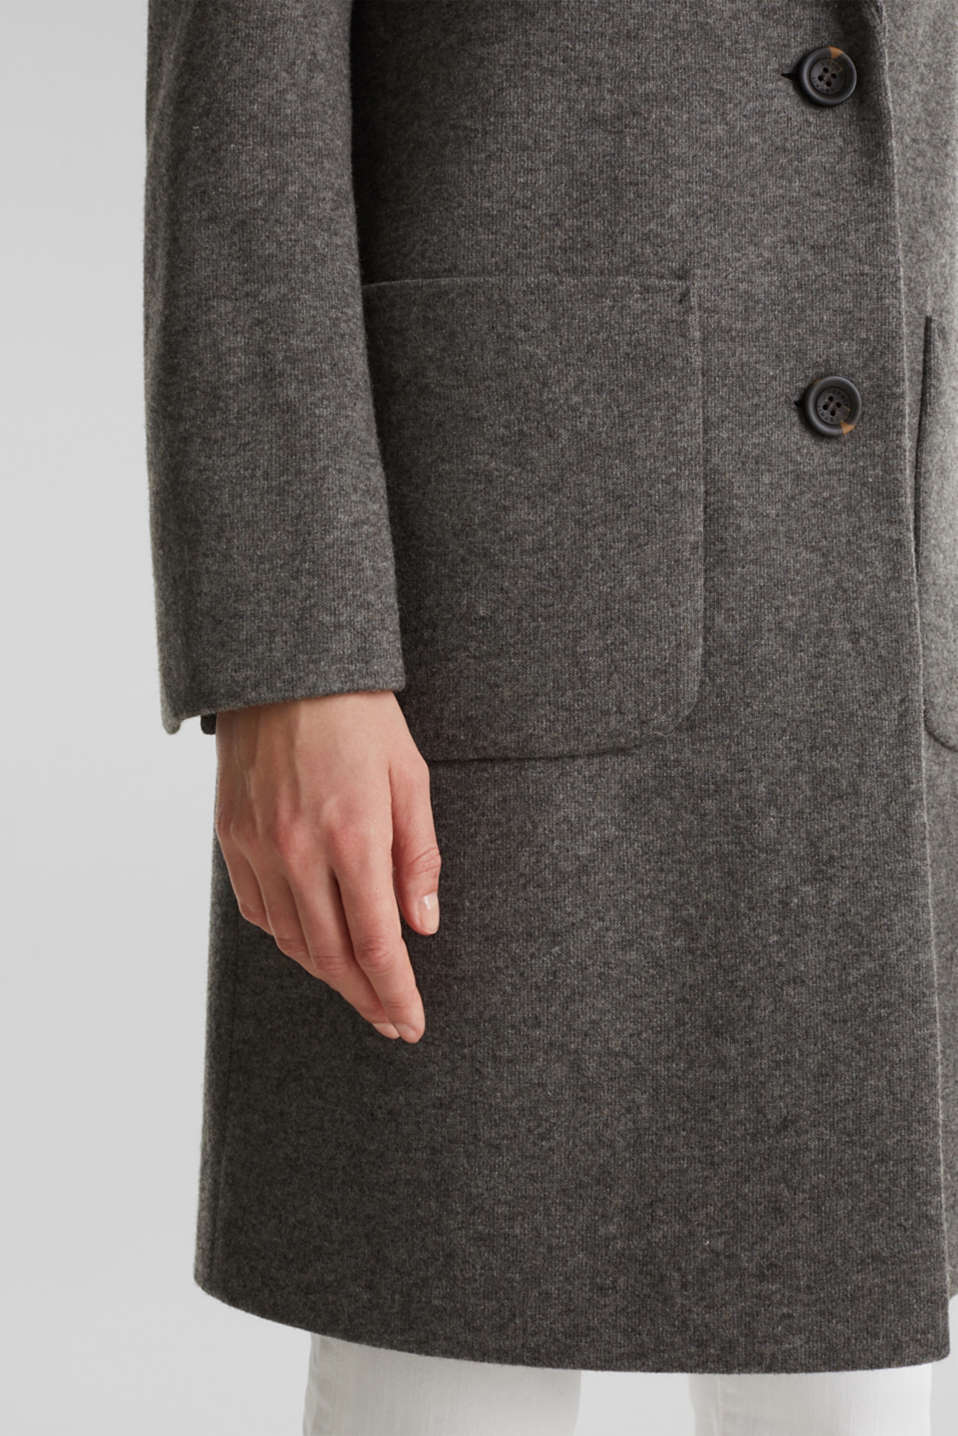 Made of blended wool: Coat in a knit look, DARK GREY 5, detail image number 2